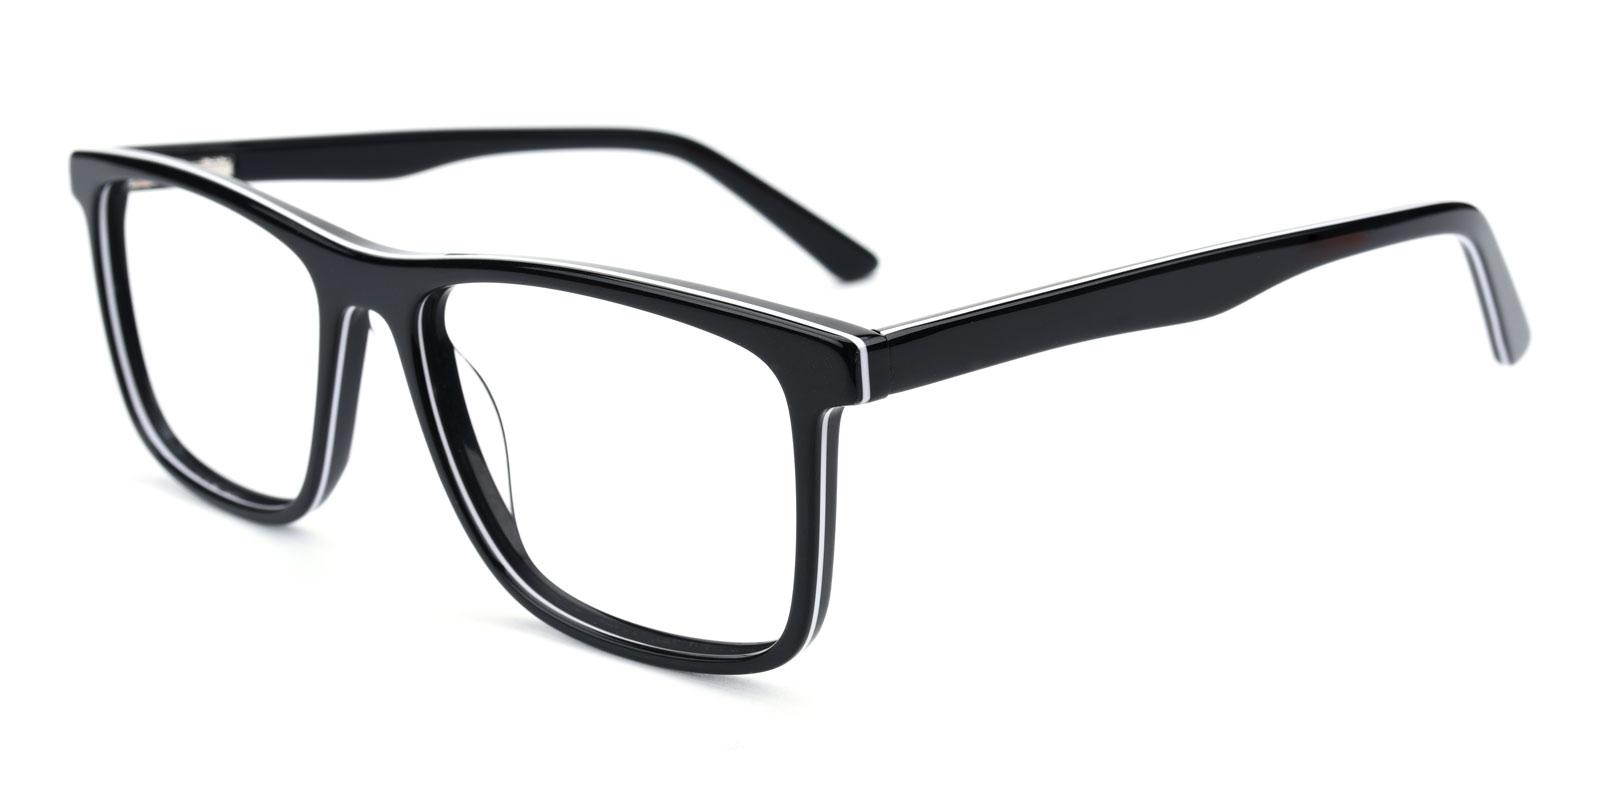 Tripper-White-Square-Acetate-Eyeglasses-additional1